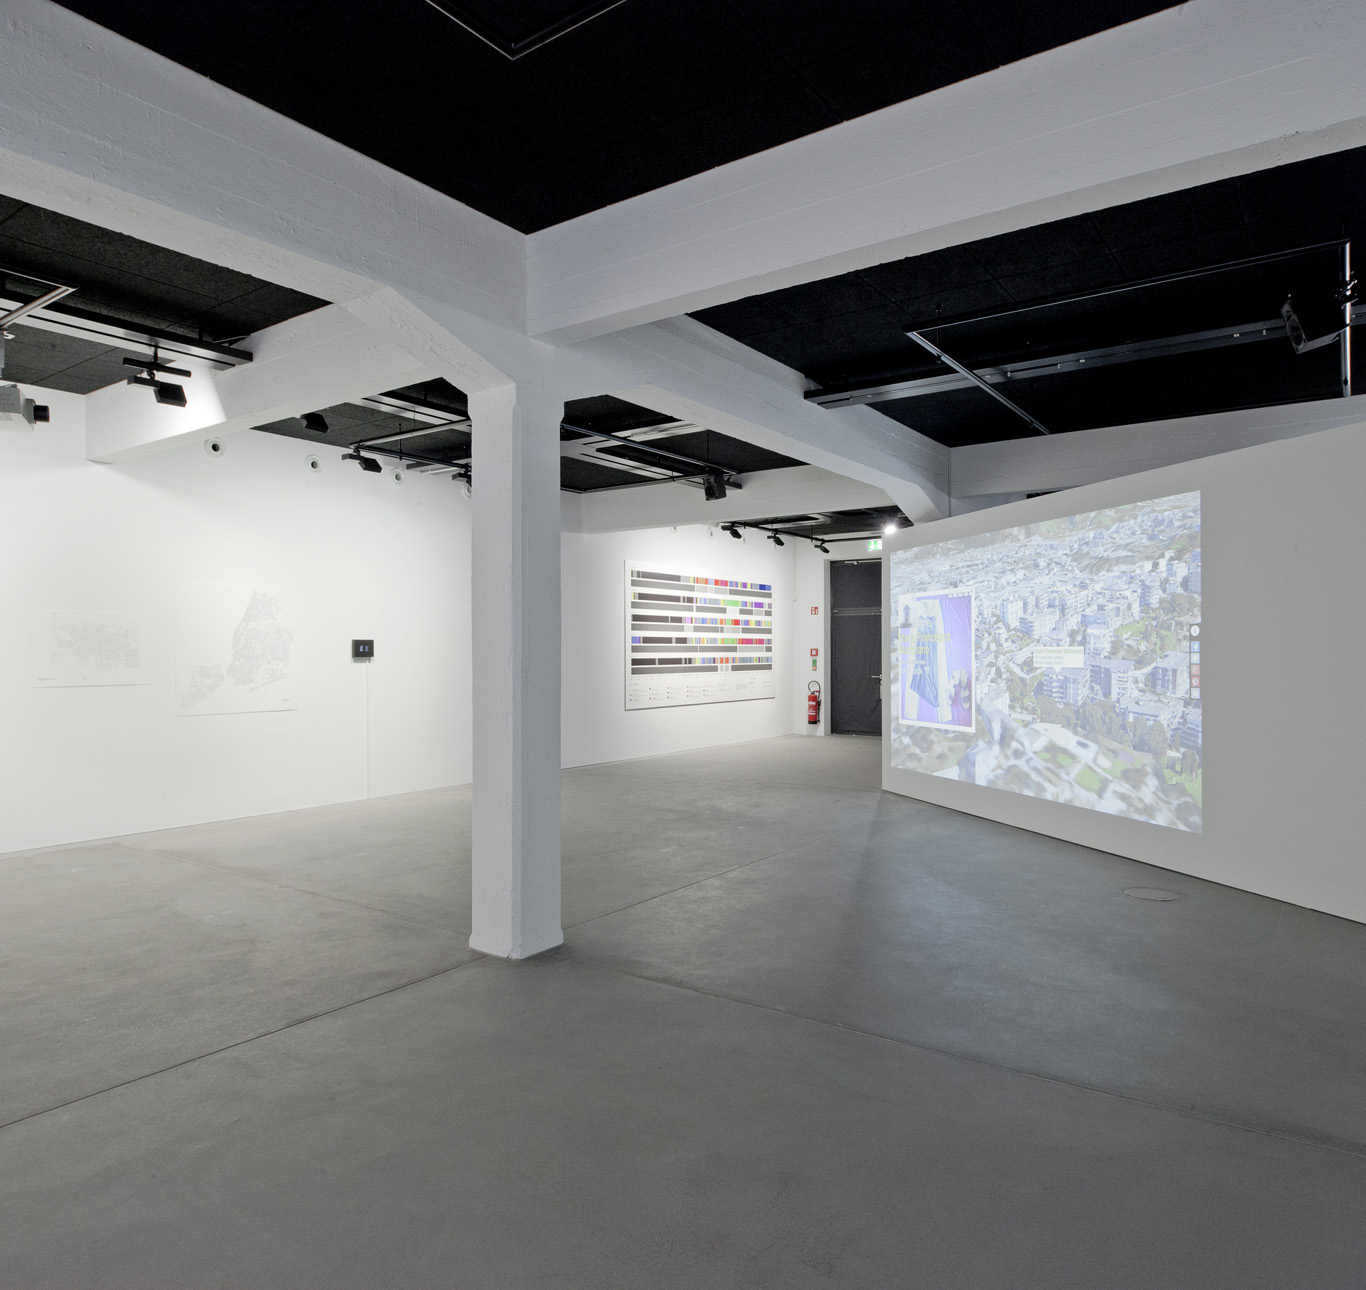 Works by Ellie Harrison (left) and Marc Lee (right). Photo: Marco Frauchiger